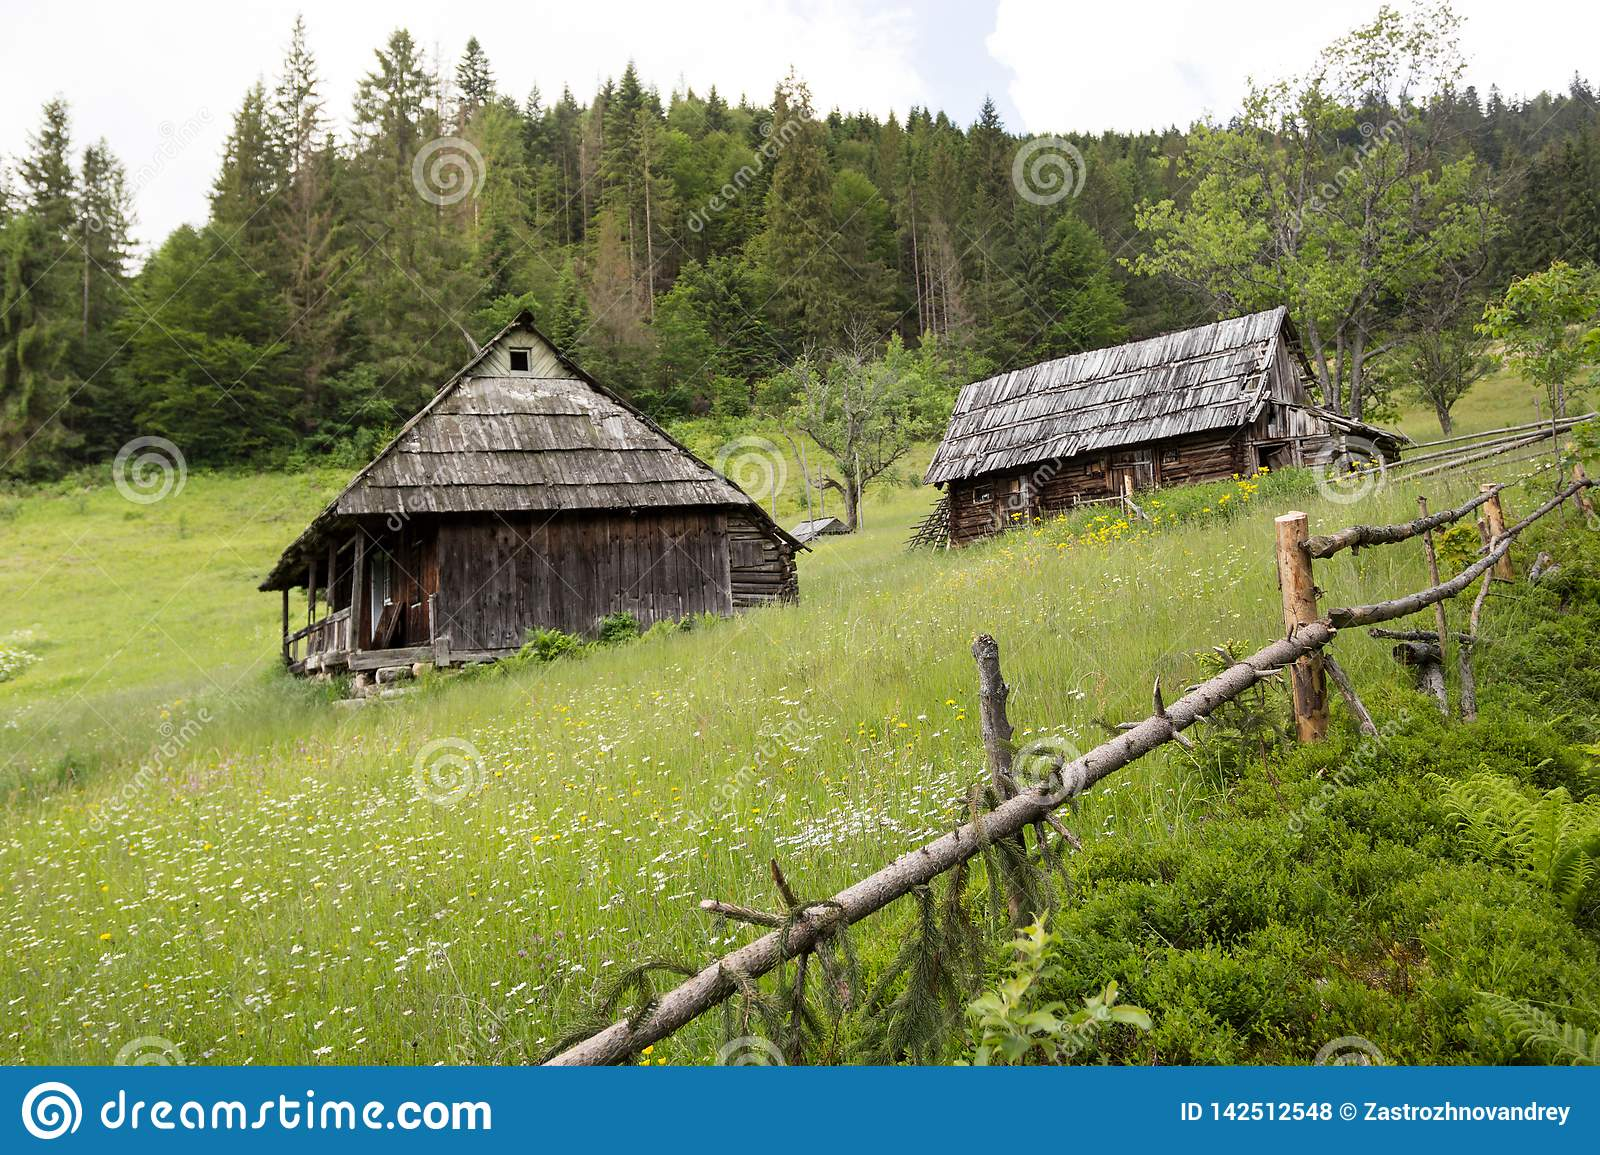 Two old wooden house on a hillside, surrounded by a fence. Forest and mountains in the background. Nature conceptual image